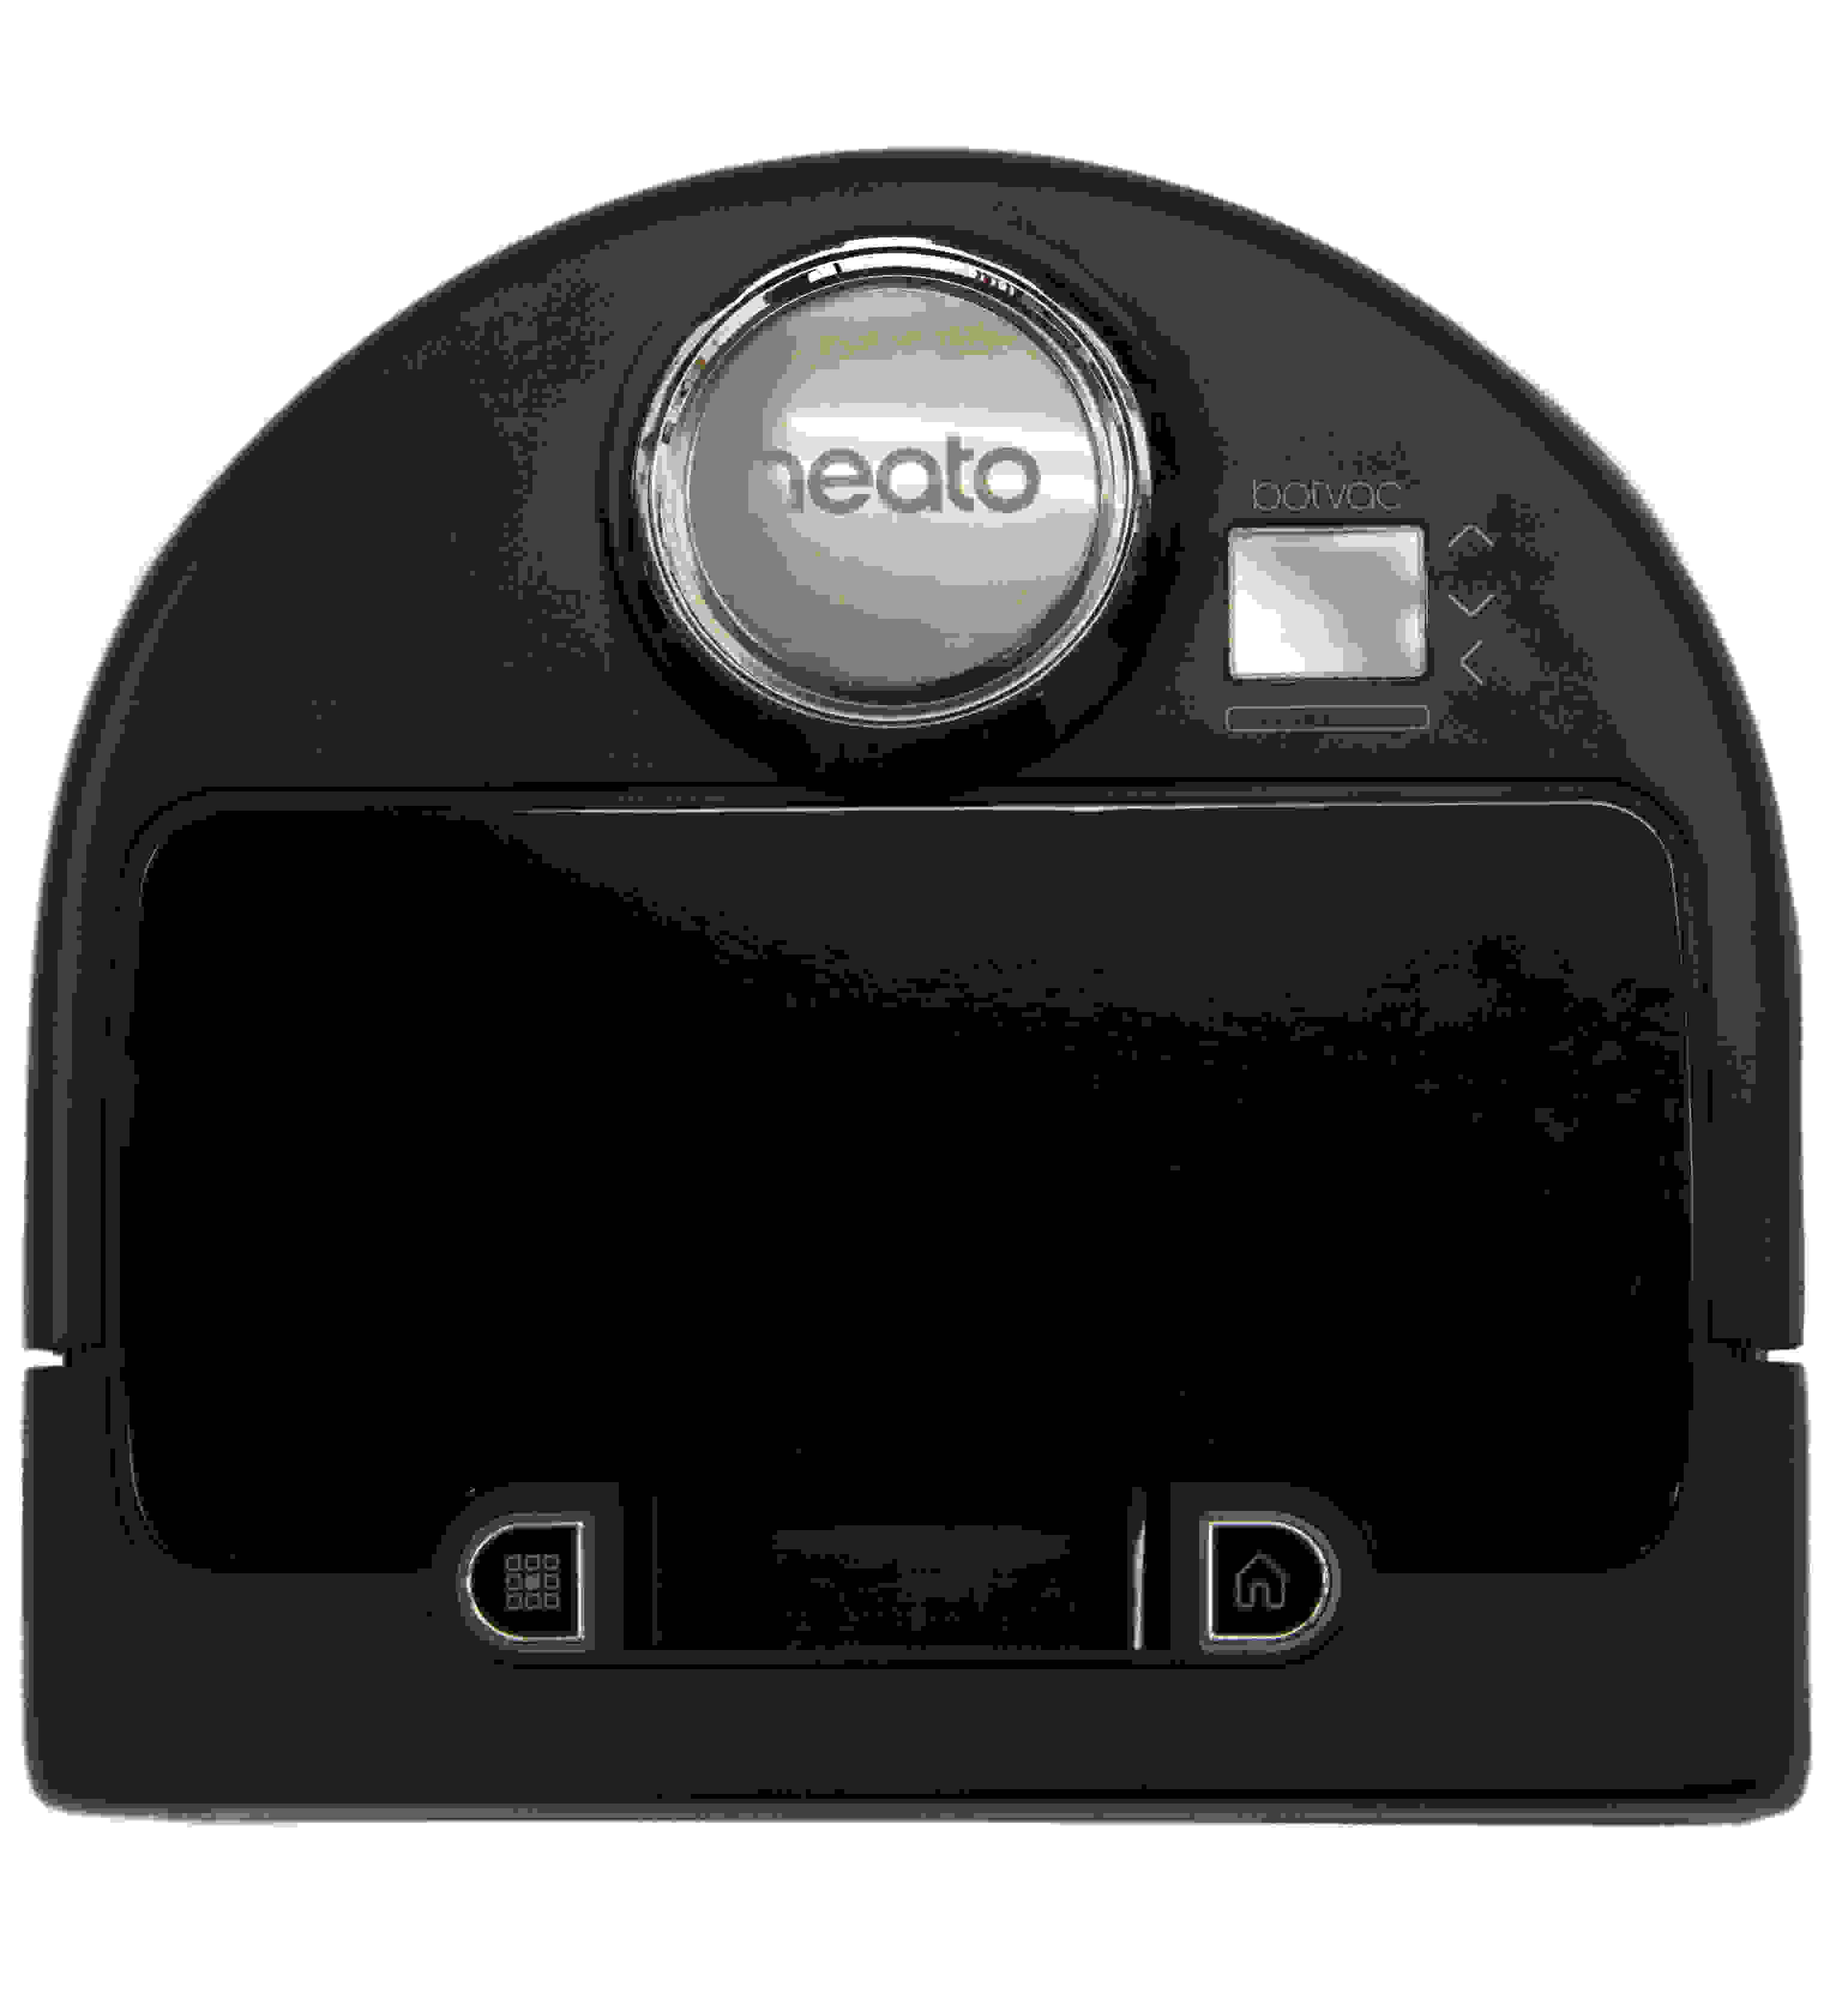 With a black exterior, Neato has really classed up the Botvac Connected.